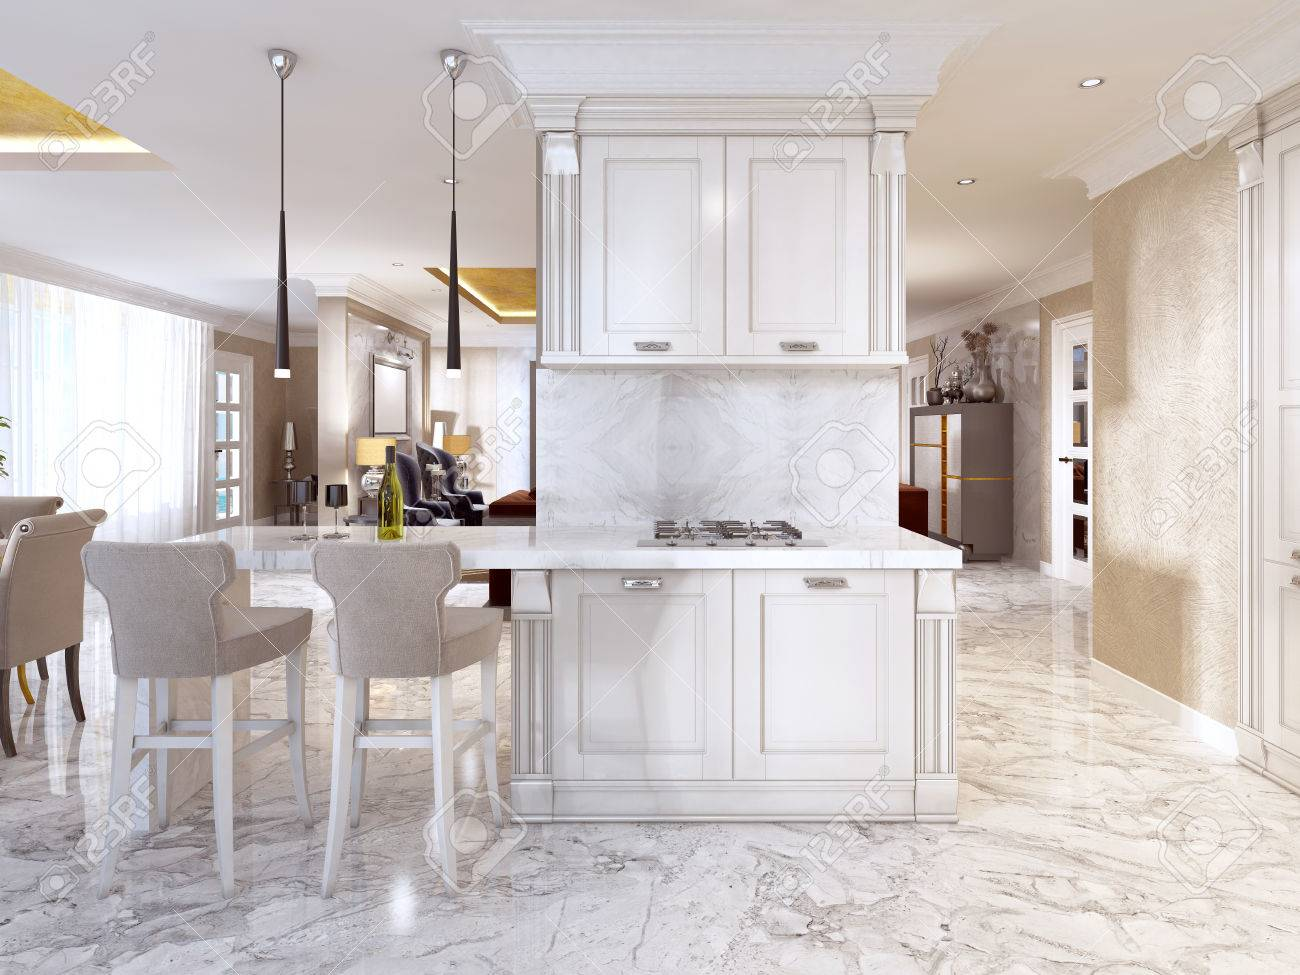 Bar counter with bar chairs in luxurious kitchen in the style..